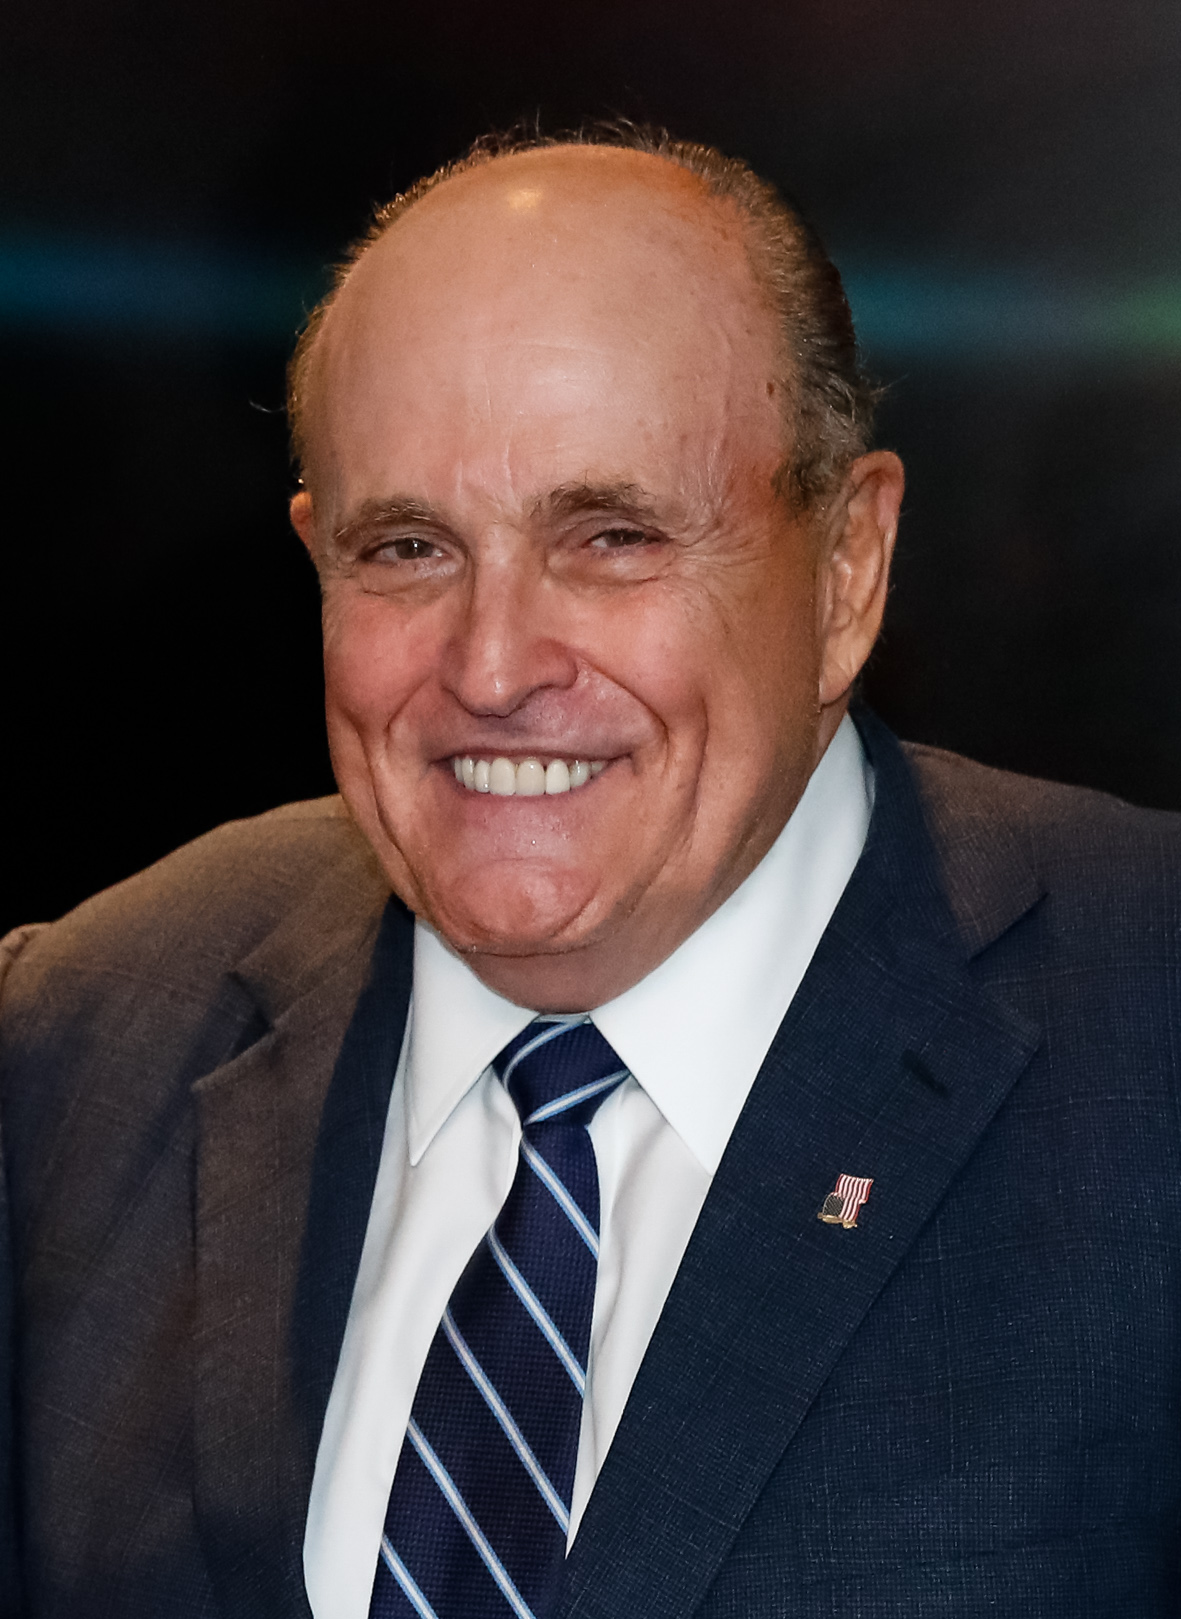 New York State Bar Association Launches Historic Inquiry Into Removing Trump Attorney Rudy Giuliani From Its Membership - New York State Bar Association